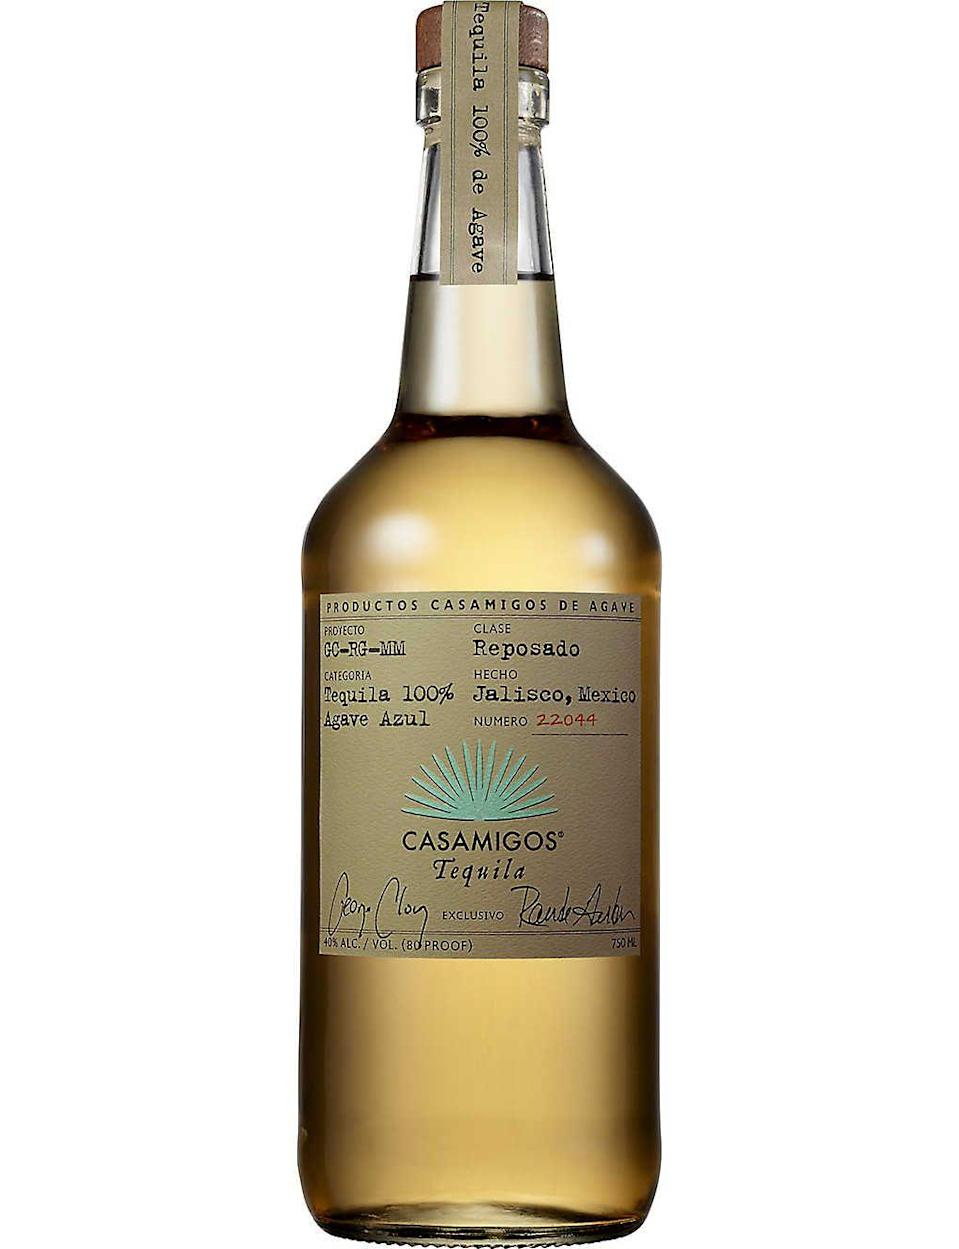 """<p><a class=""""link rapid-noclick-resp"""" href=""""https://www.amazon.co.uk/Casamigos-Reposado-Tequila-70-cl/dp/B00X8189EC/ref=pd_lpo_370_t_0/257-0942216-2119626?_encoding=UTF8&pd_rd_i=B00X8189EC&pd_rd_r=a7a0546f-6fe9-4421-bb10-b197fa2e5126&pd_rd_w=Pr2Xz&pd_rd_wg=JnJGi&pf_rd_p=3366510f-1771-44b5-99e2-20c1889506ac&pf_rd_r=SYZ9K82Q5RY86GNMGV9Y&psc=1&refRID=SYZ9K82Q5RY86GNMGV9Y&tag=hearstuk-yahoo-21&ascsubtag=%5Bartid%7C1923.g.35509977%5Bsrc%7Cyahoo-uk"""" rel=""""nofollow noopener"""" target=""""_blank"""" data-ylk=""""slk:SHOP"""">SHOP</a></p><p>There are a lot of tequilas and mezcals out there fronted by celebs, but George Clooney's is a particularly good example. That might be why Diageo bought it for $1 billion in 2017.</p><p>£50, amazon.co.uk</p>"""